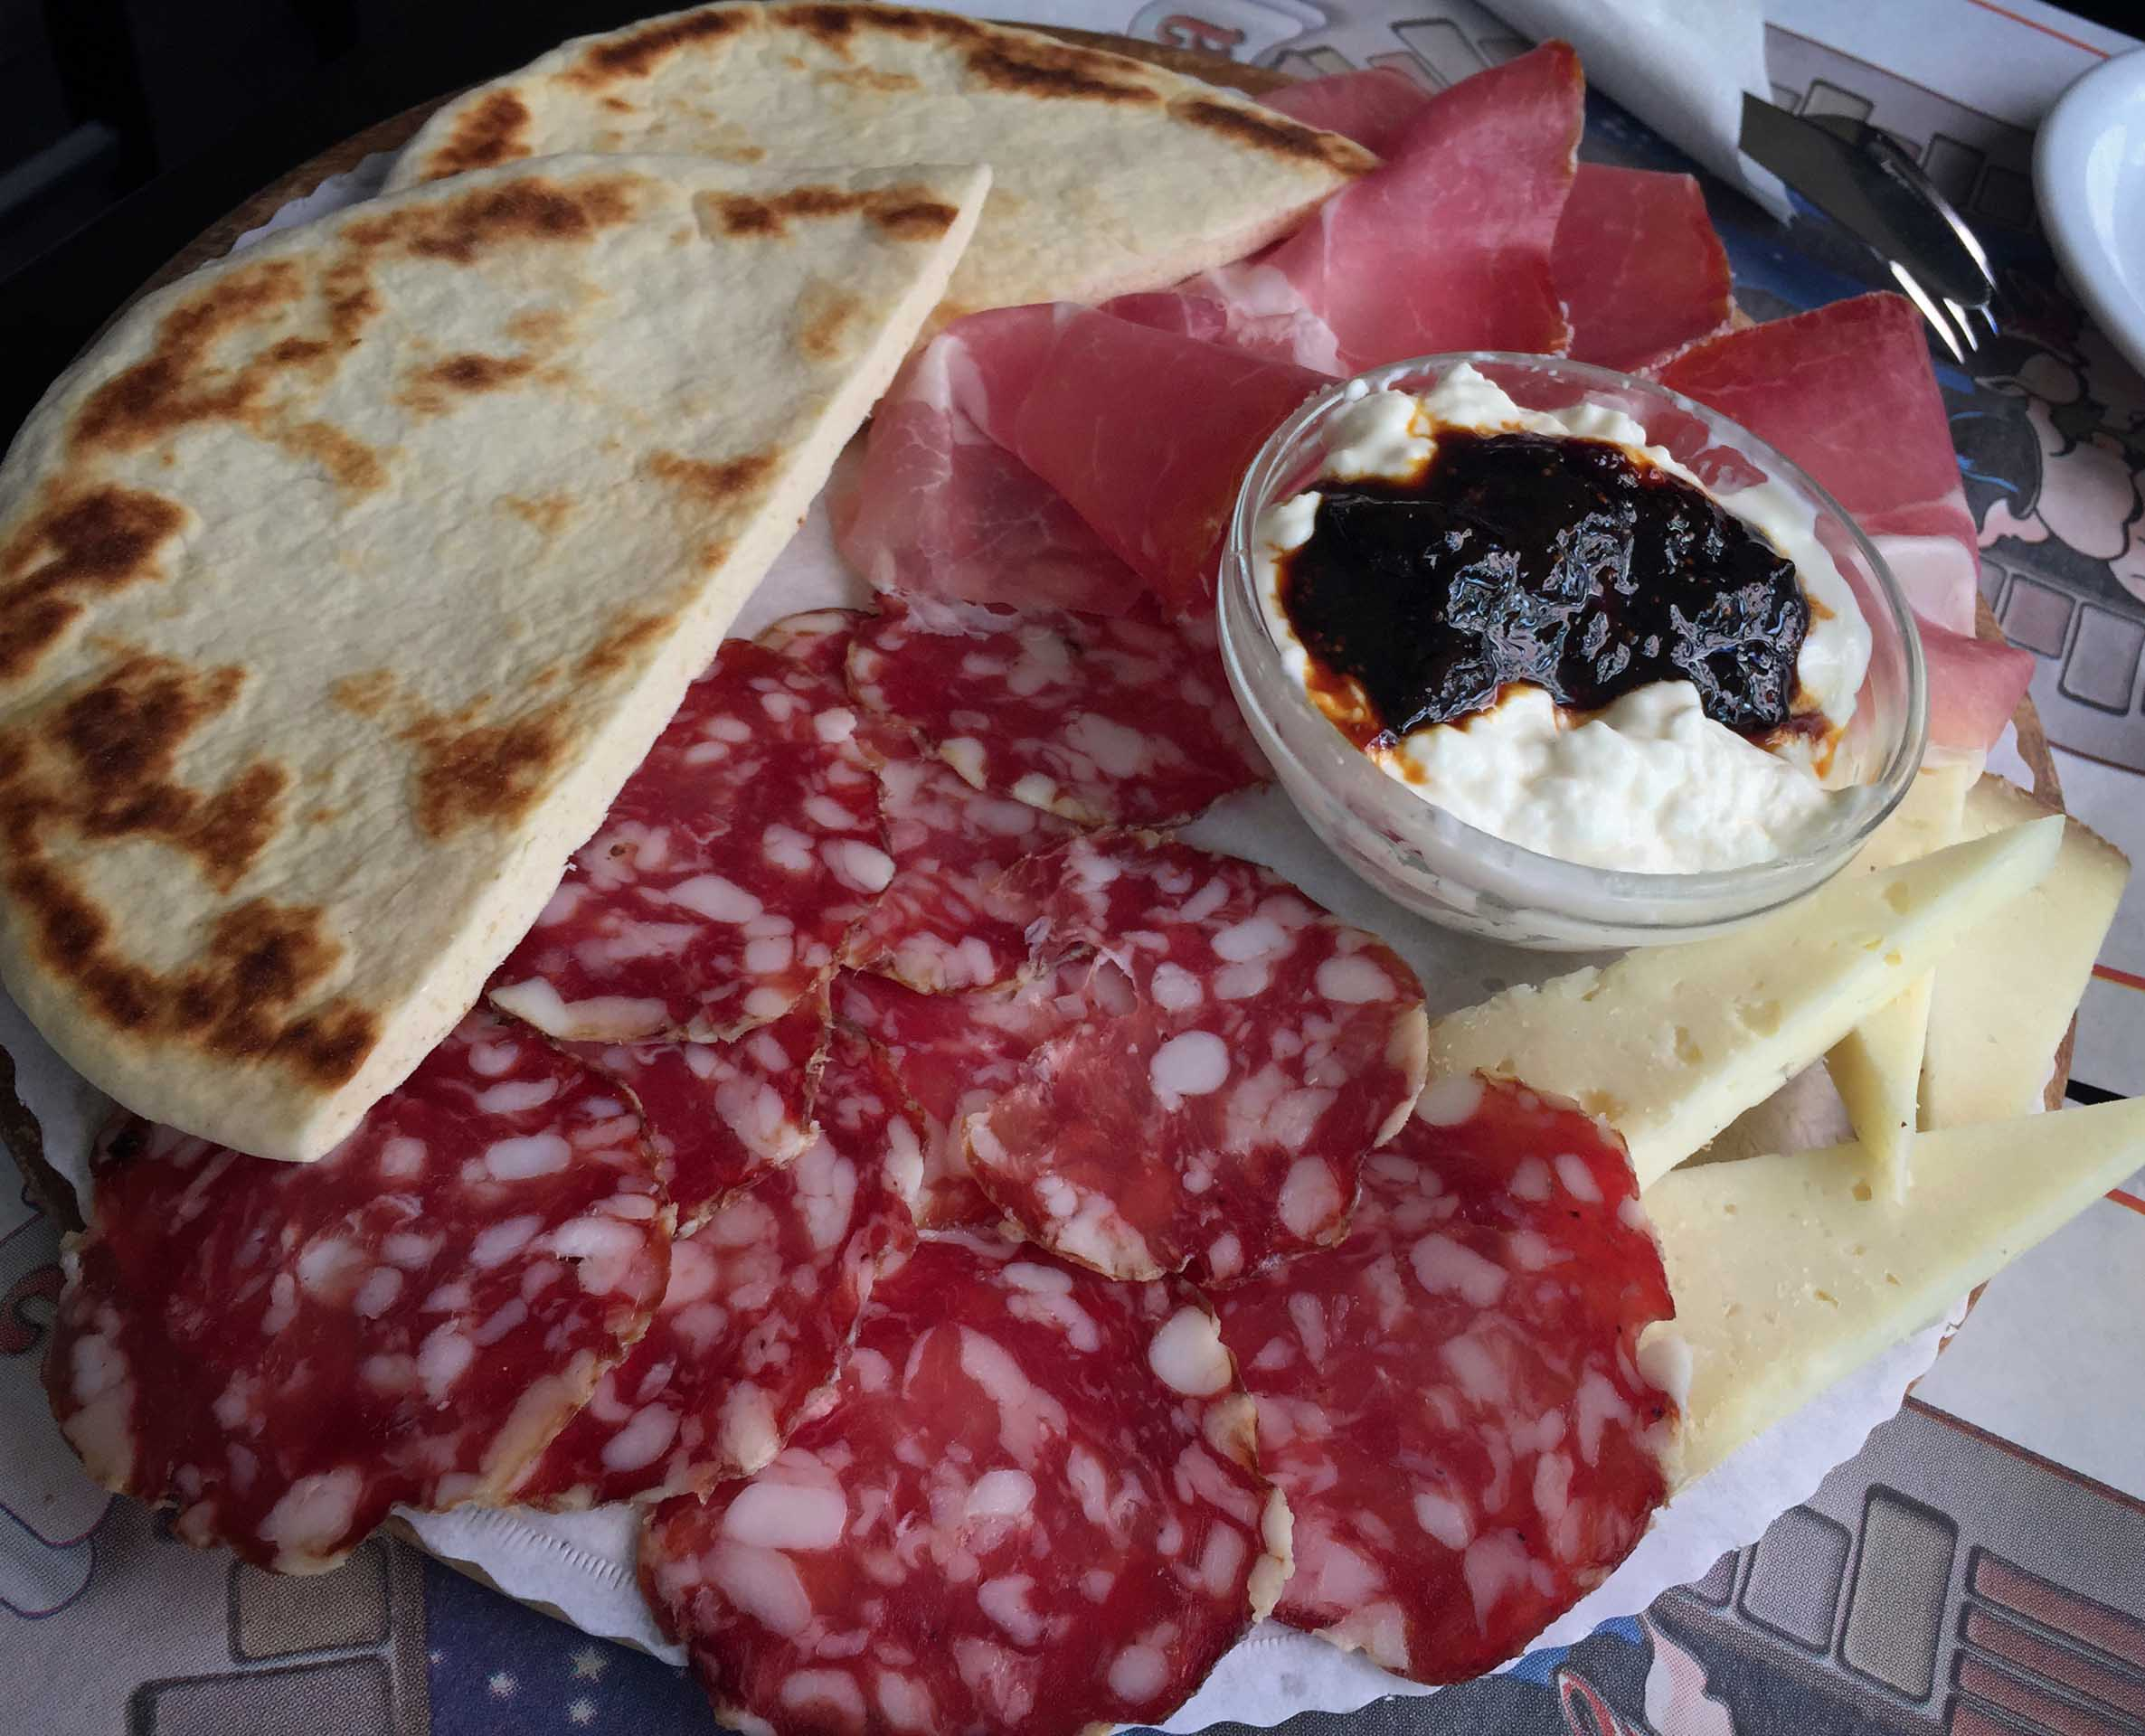 Cold meats and cheese with flat bread